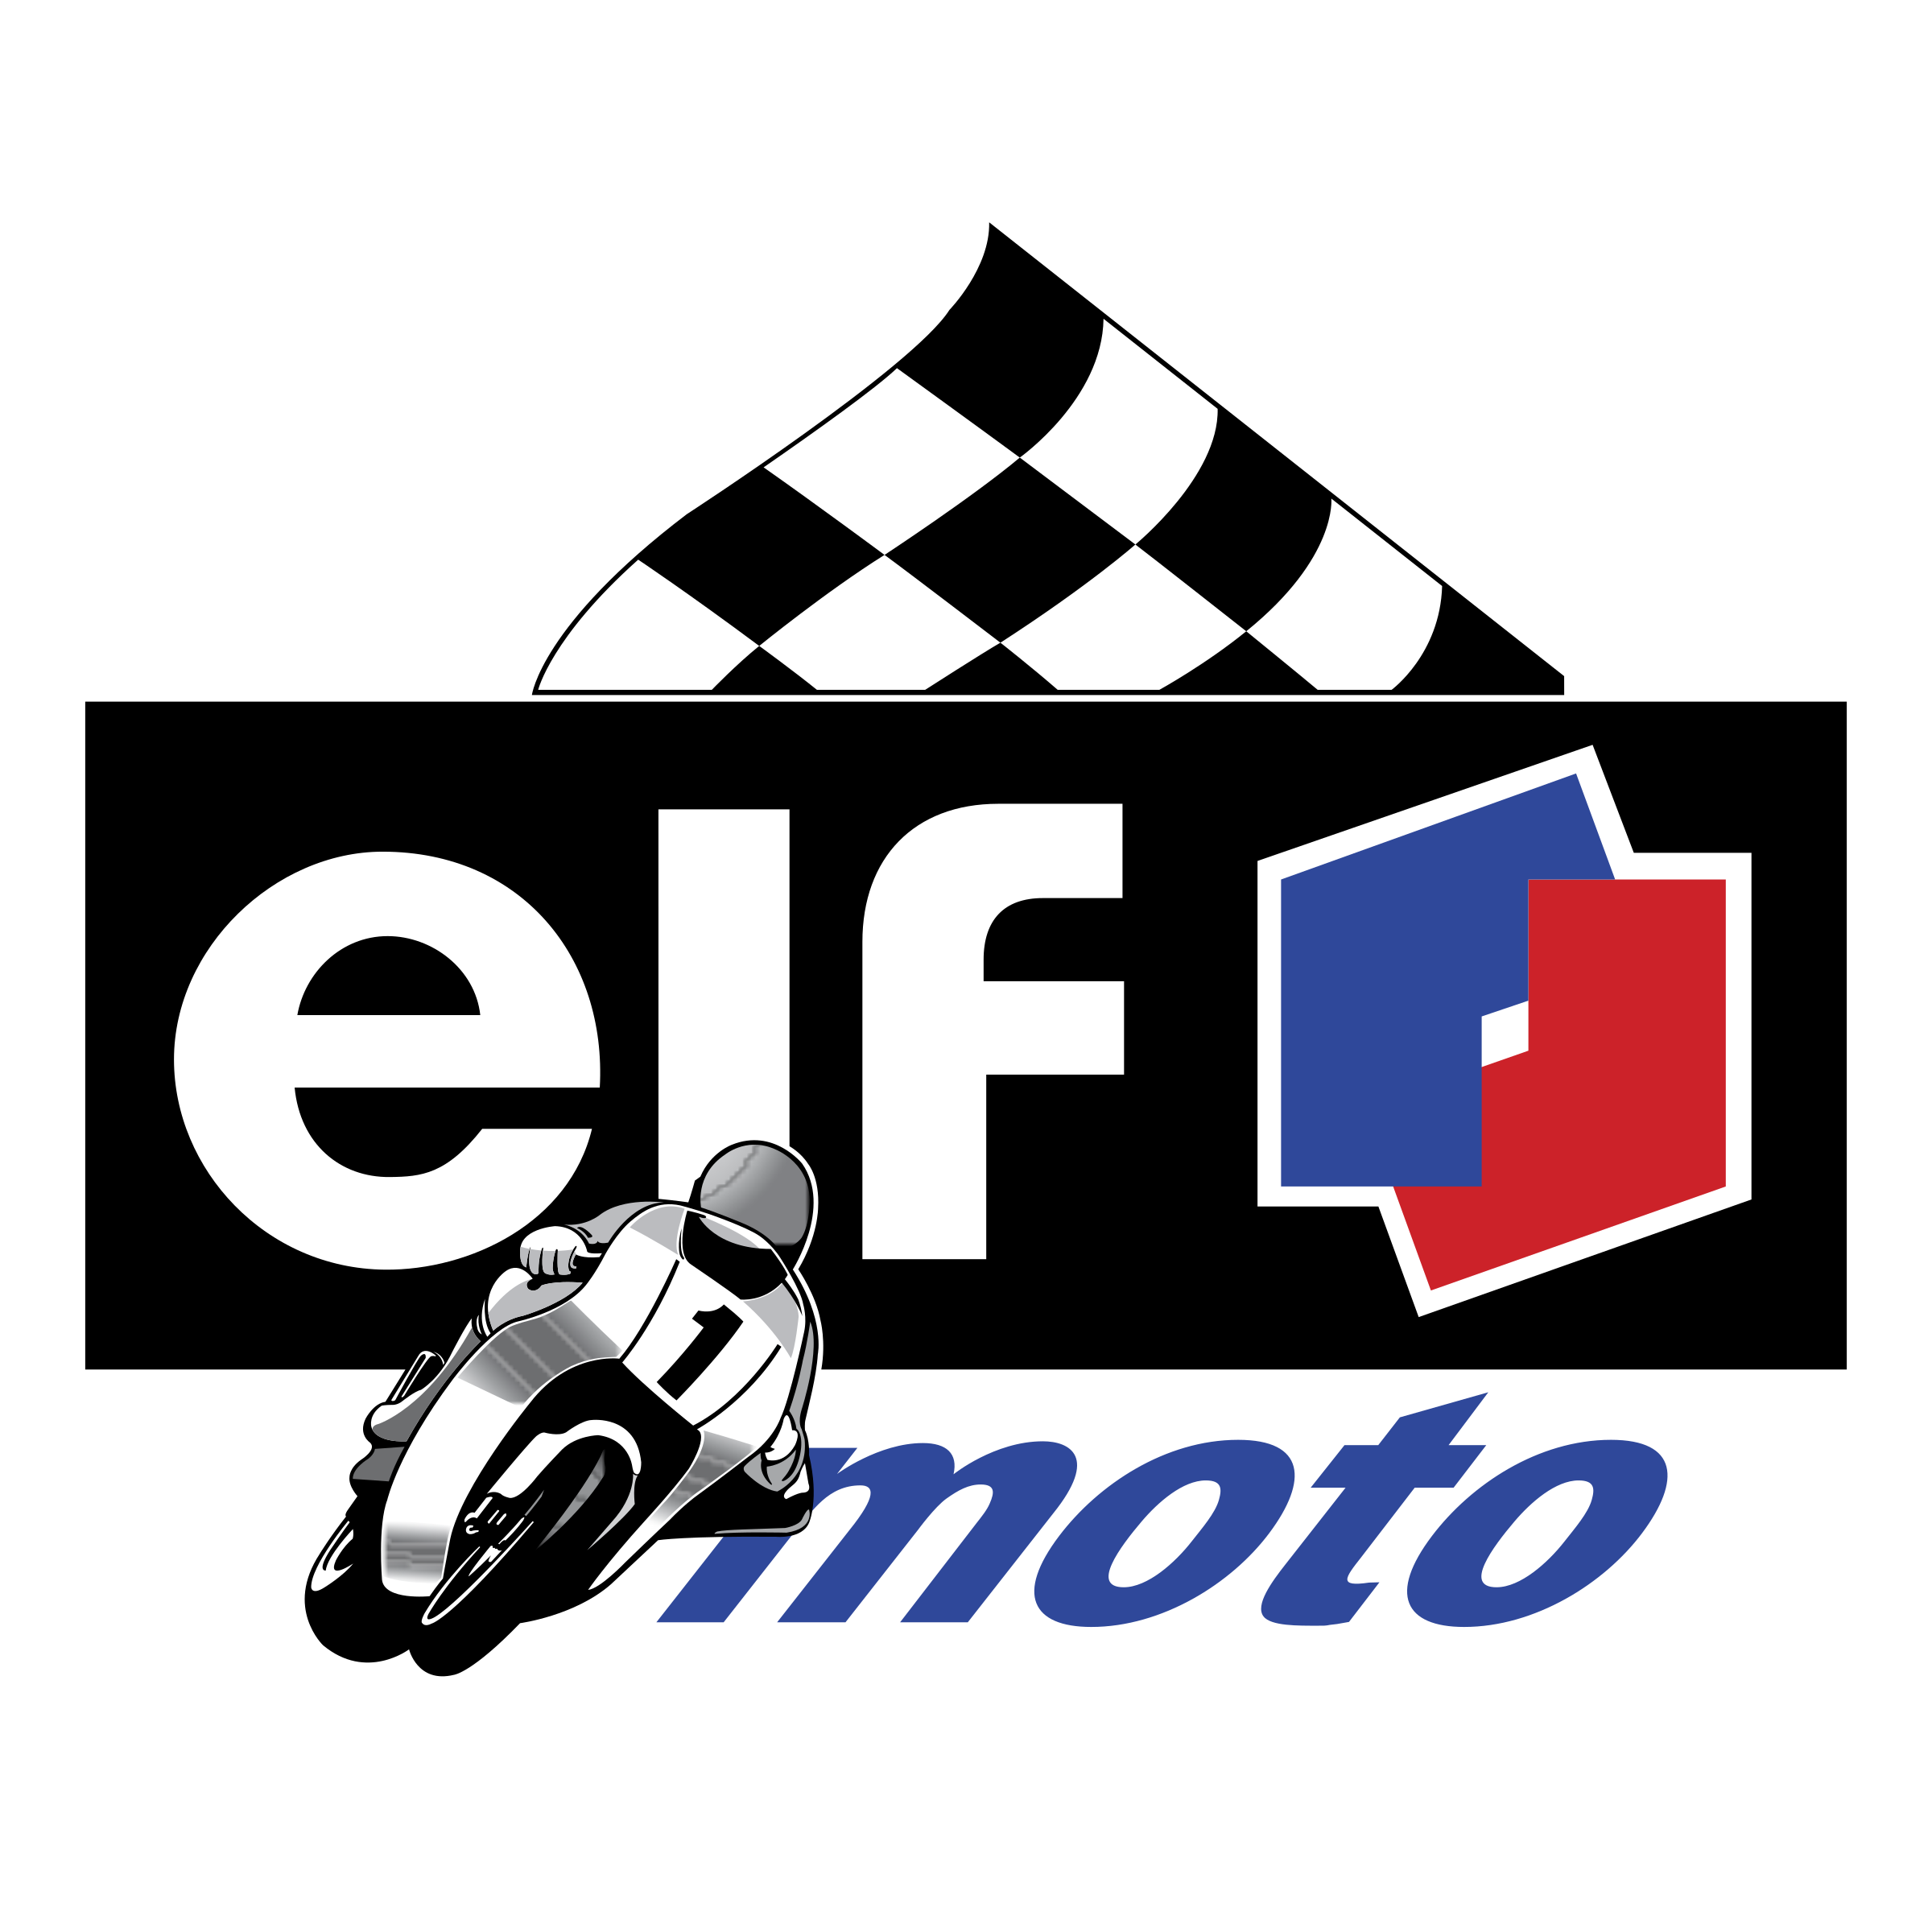 Elf transparent svg. Moto logo png vector